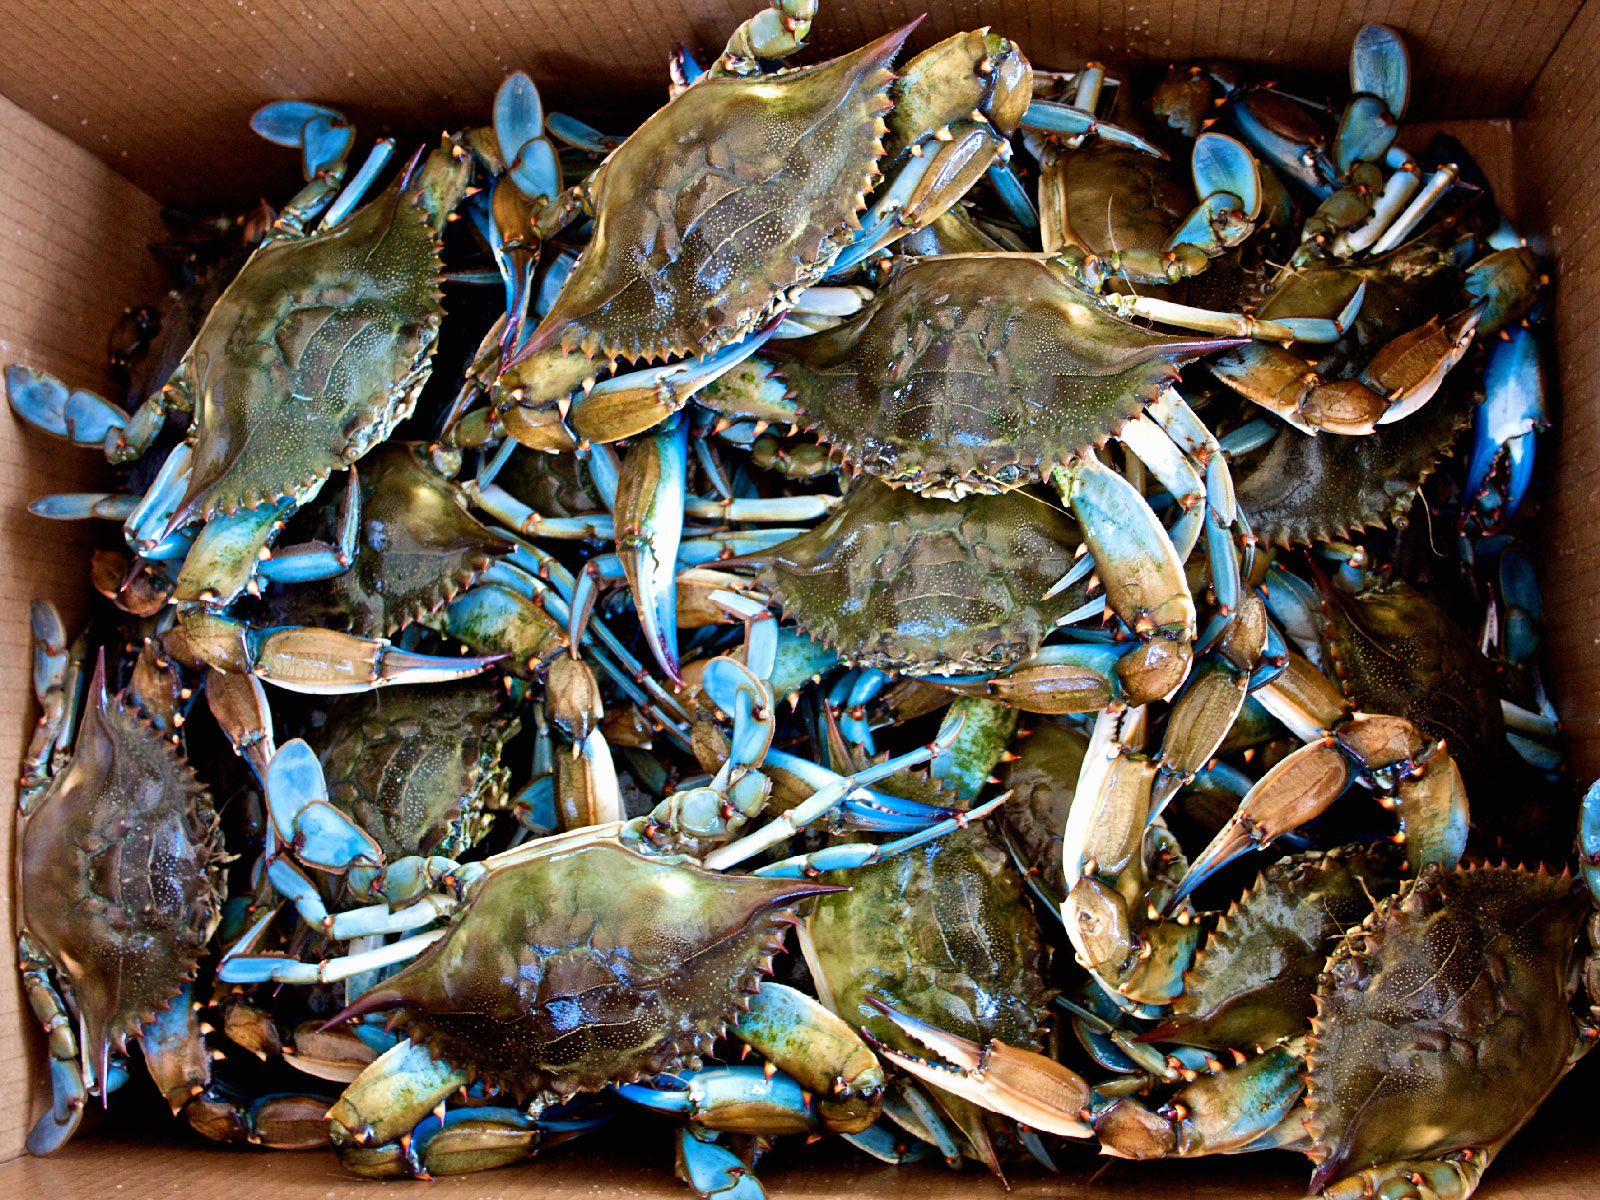 U.S. Seafood Supplier Admits to Mislabeling Over $4 Million Worth of Crab